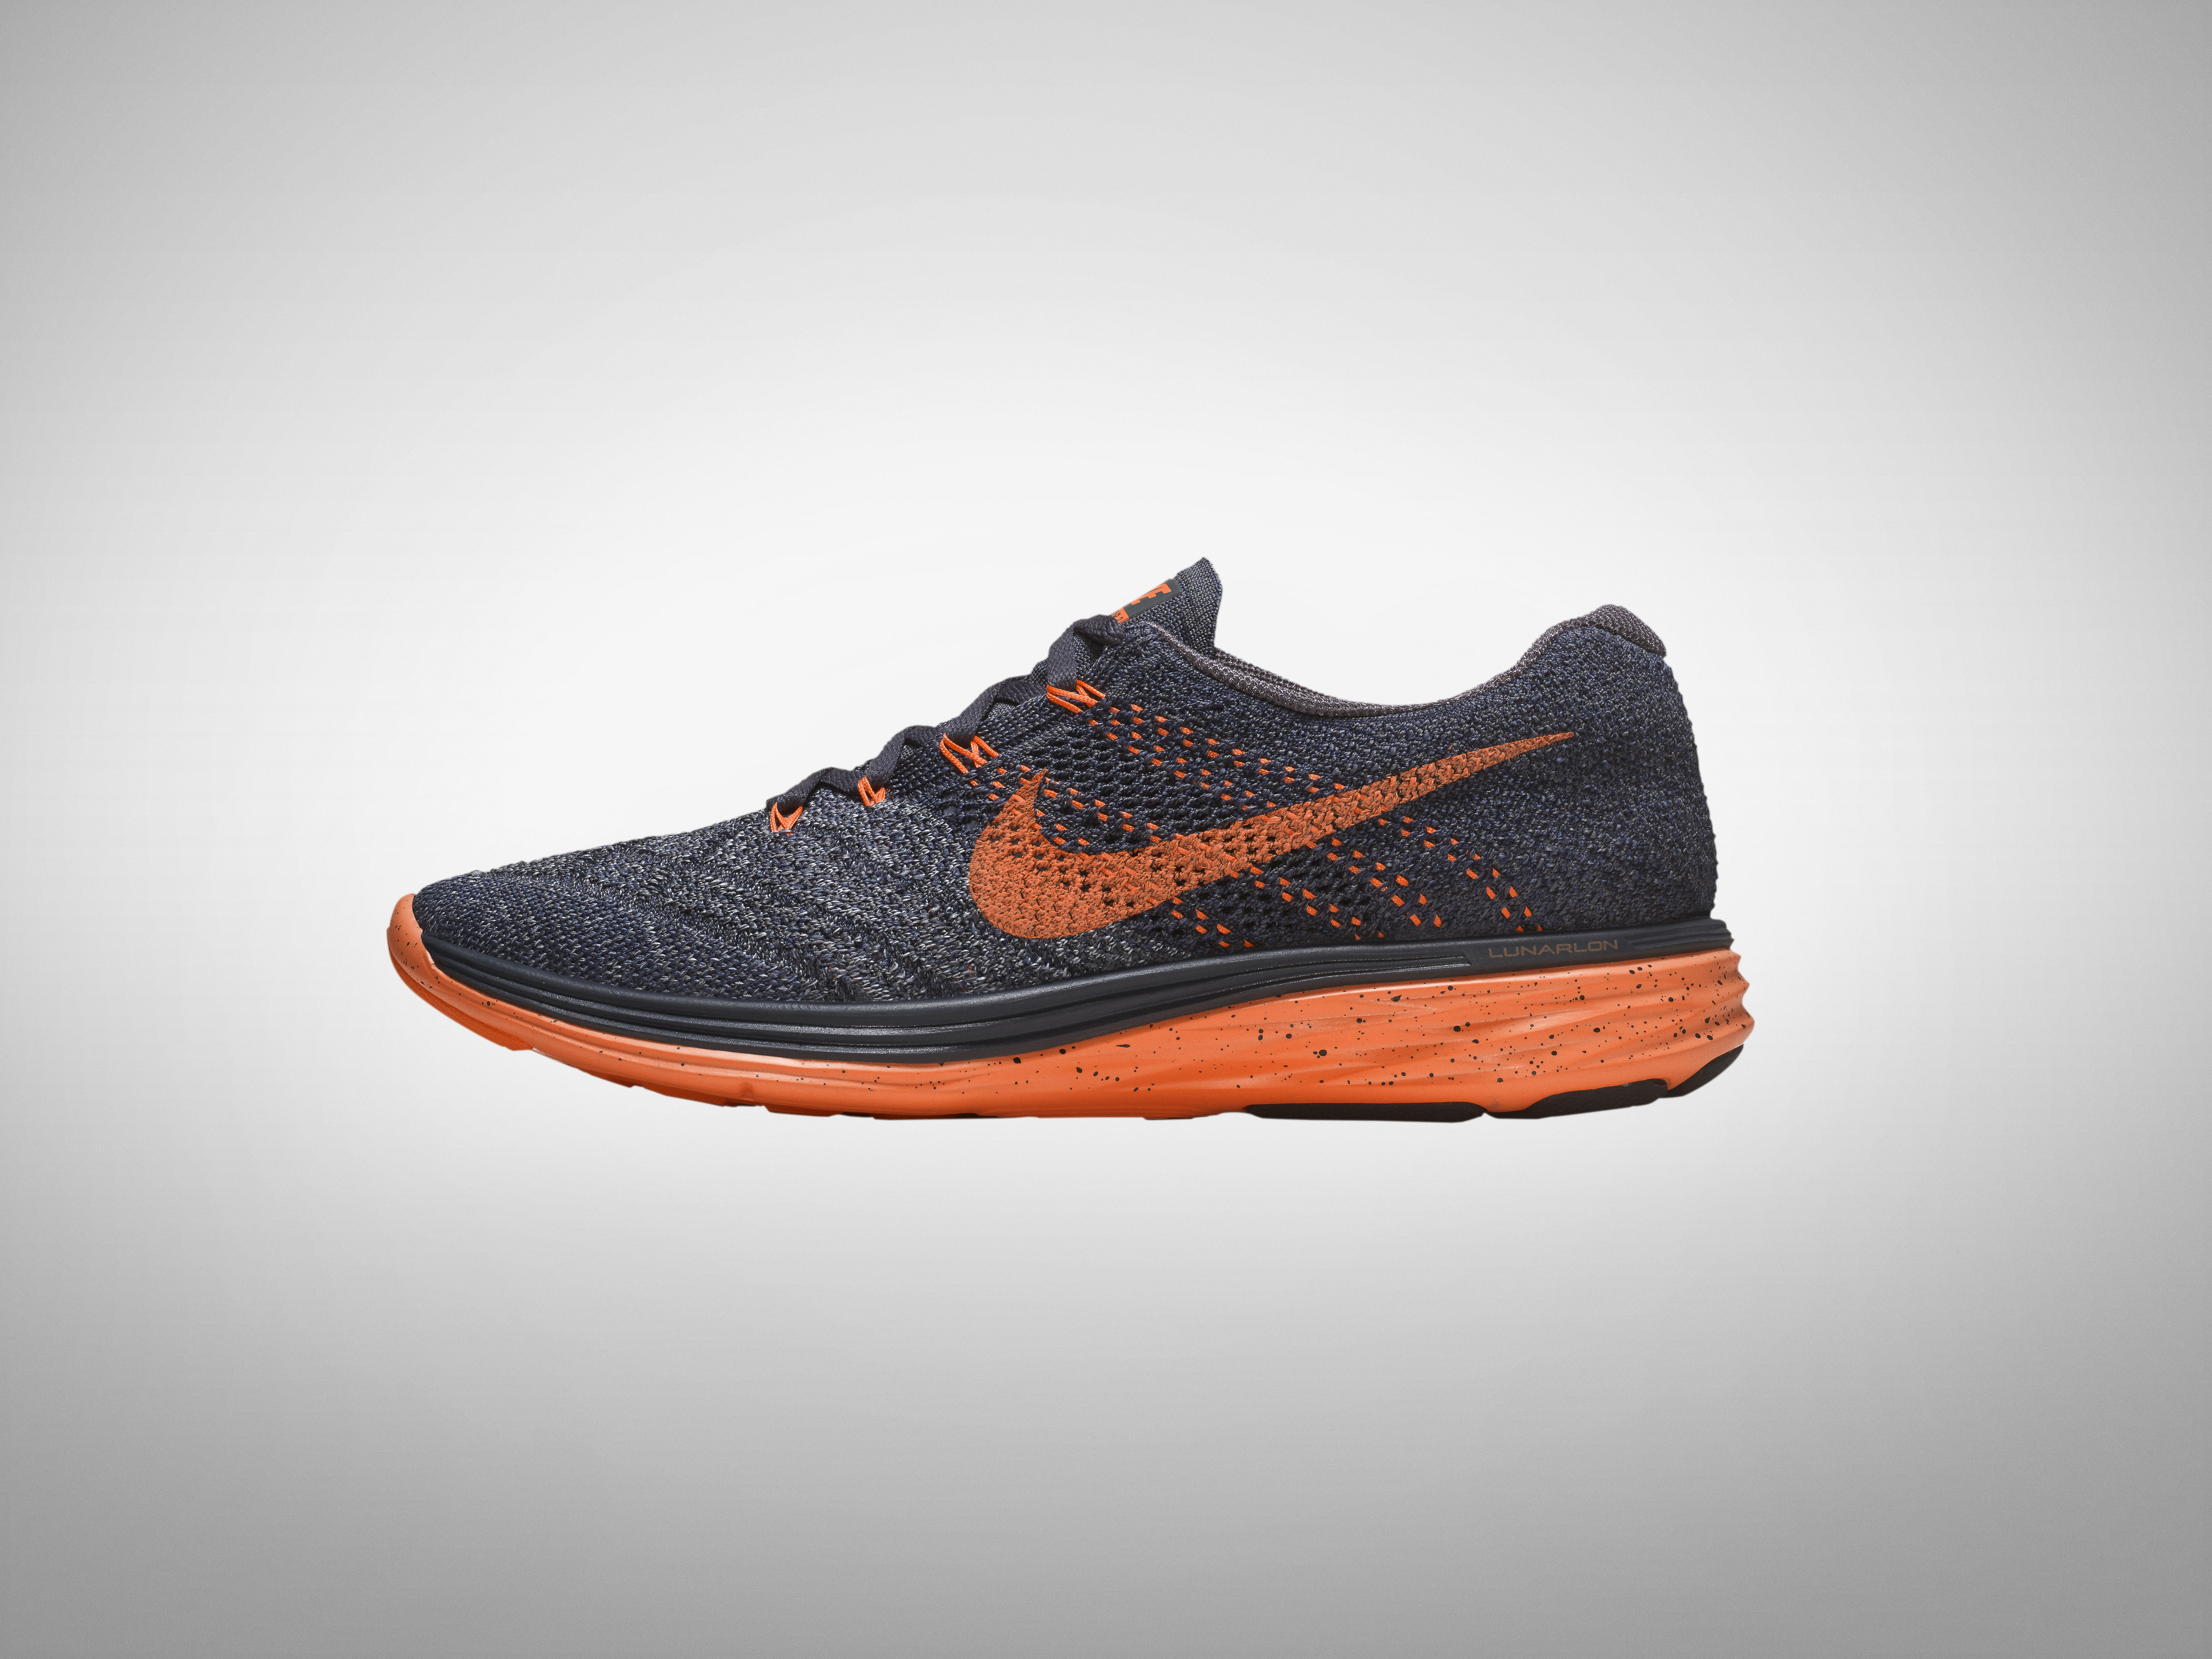 ... Nike Flyknit Lunar 3 — Made light to go long - Nike News ...